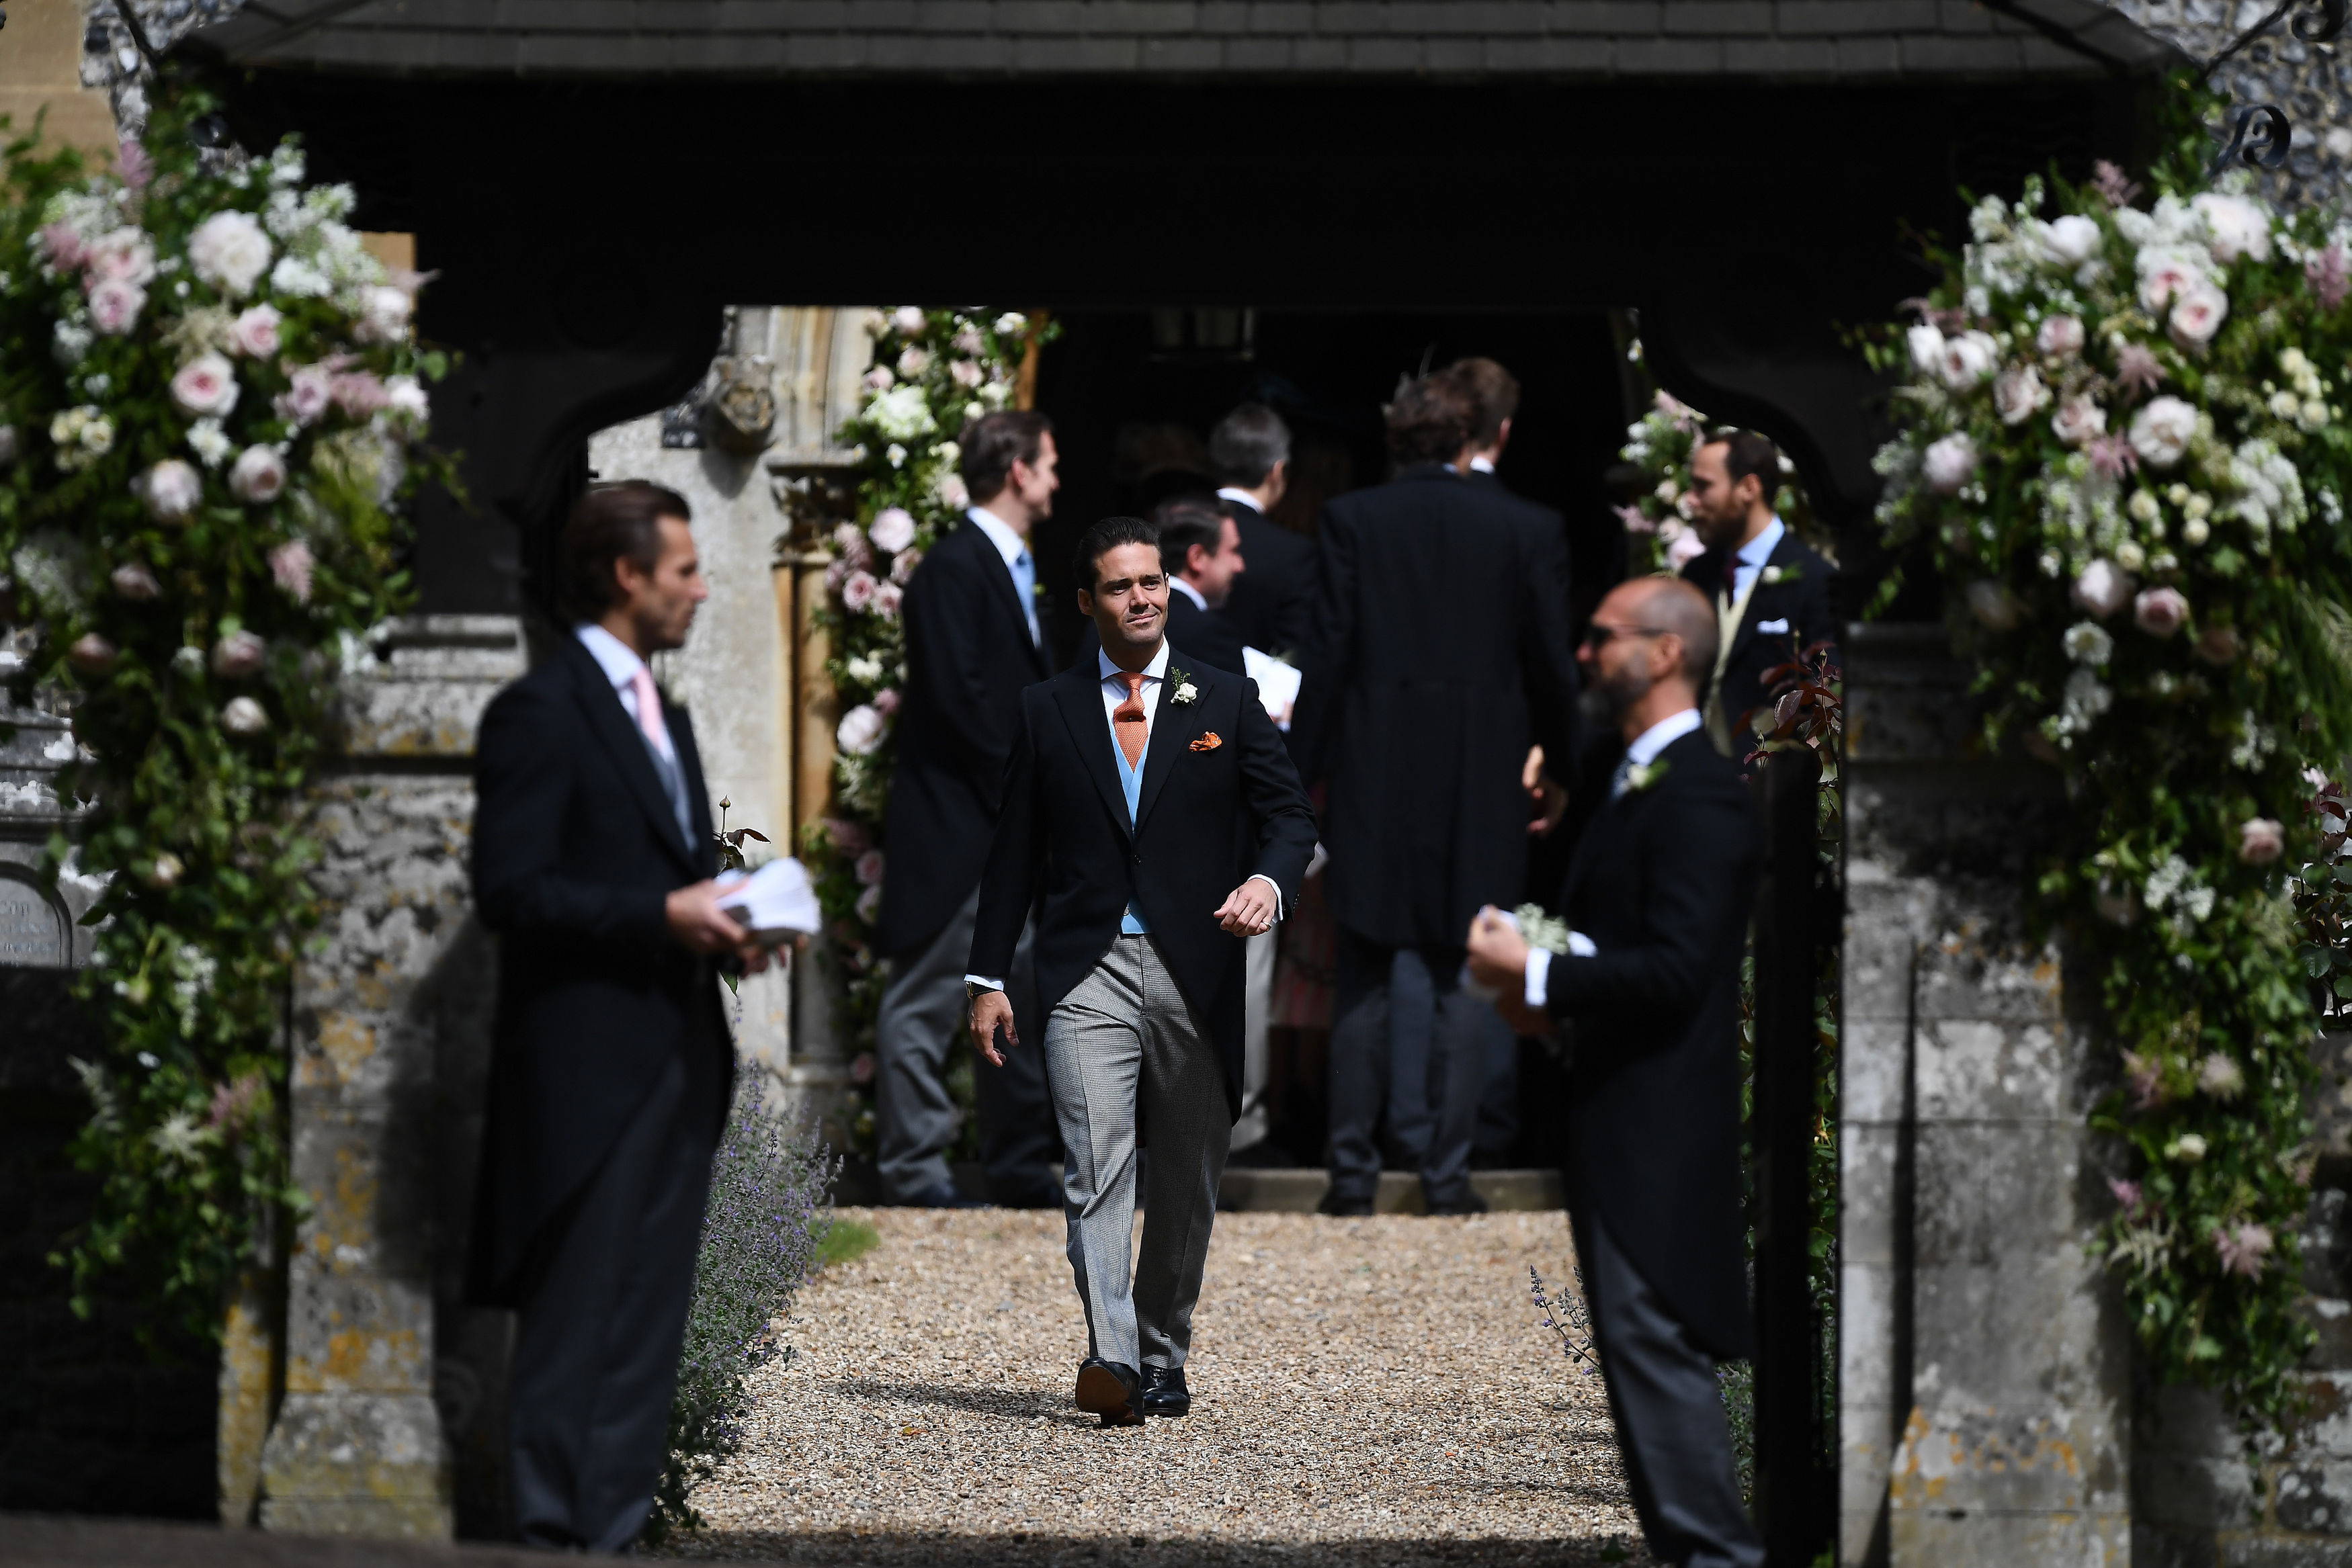 Le mariage presque royal de Pippa Middleton et James Matthews - Spencer Matthews